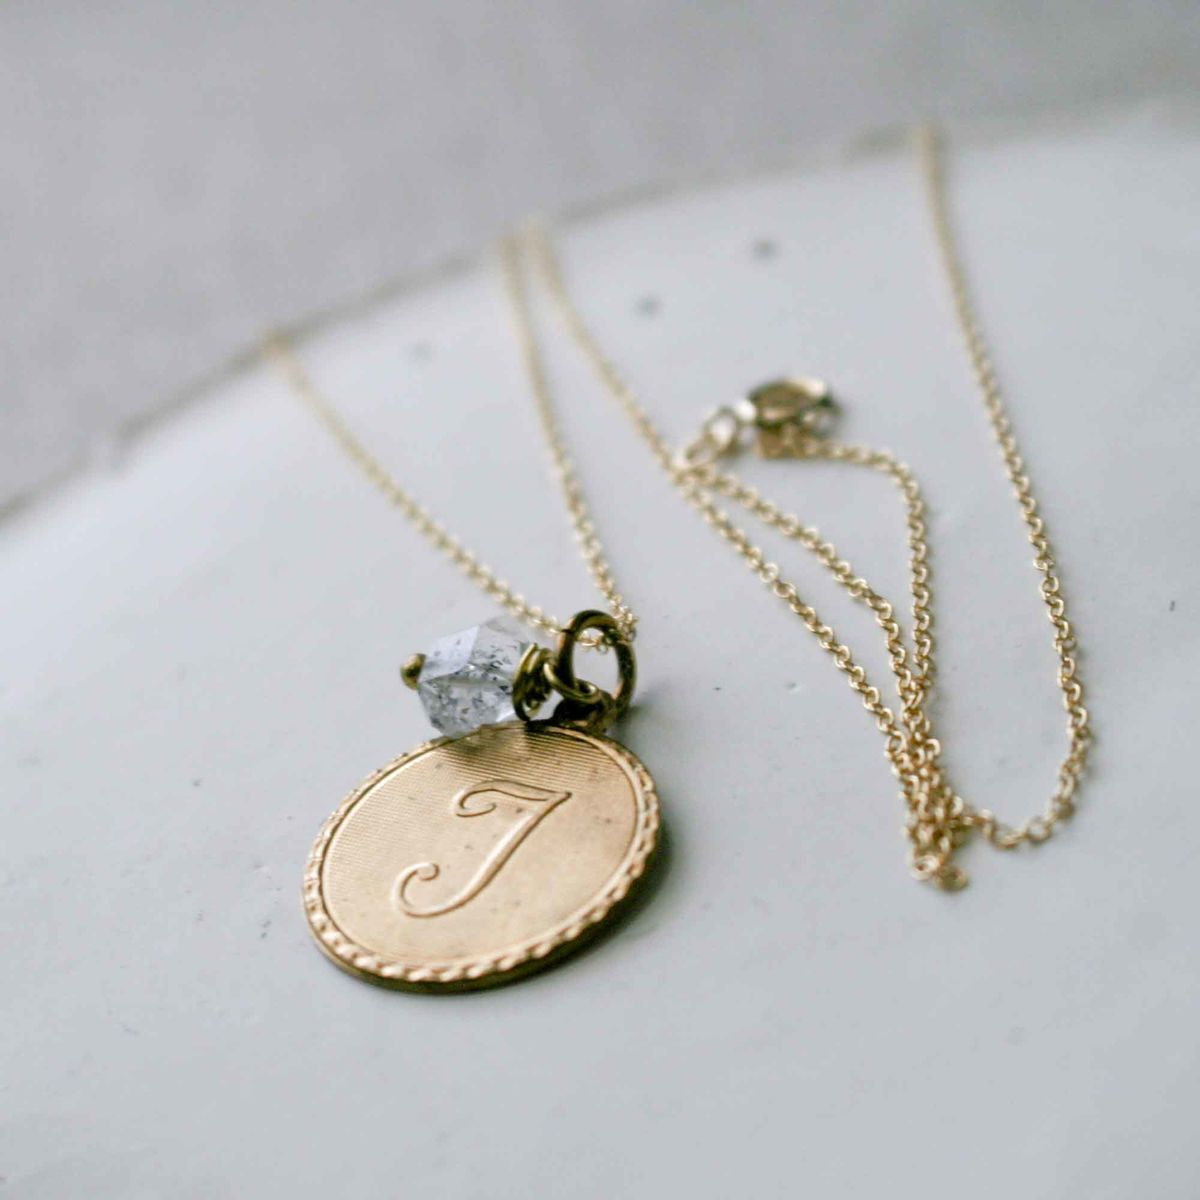 Uppercase Cursive Initial Monogram Letter Round Disc Charm Necklace Pertaining To 2019 Letter N Alphabet Locket Element Necklaces (View 21 of 25)